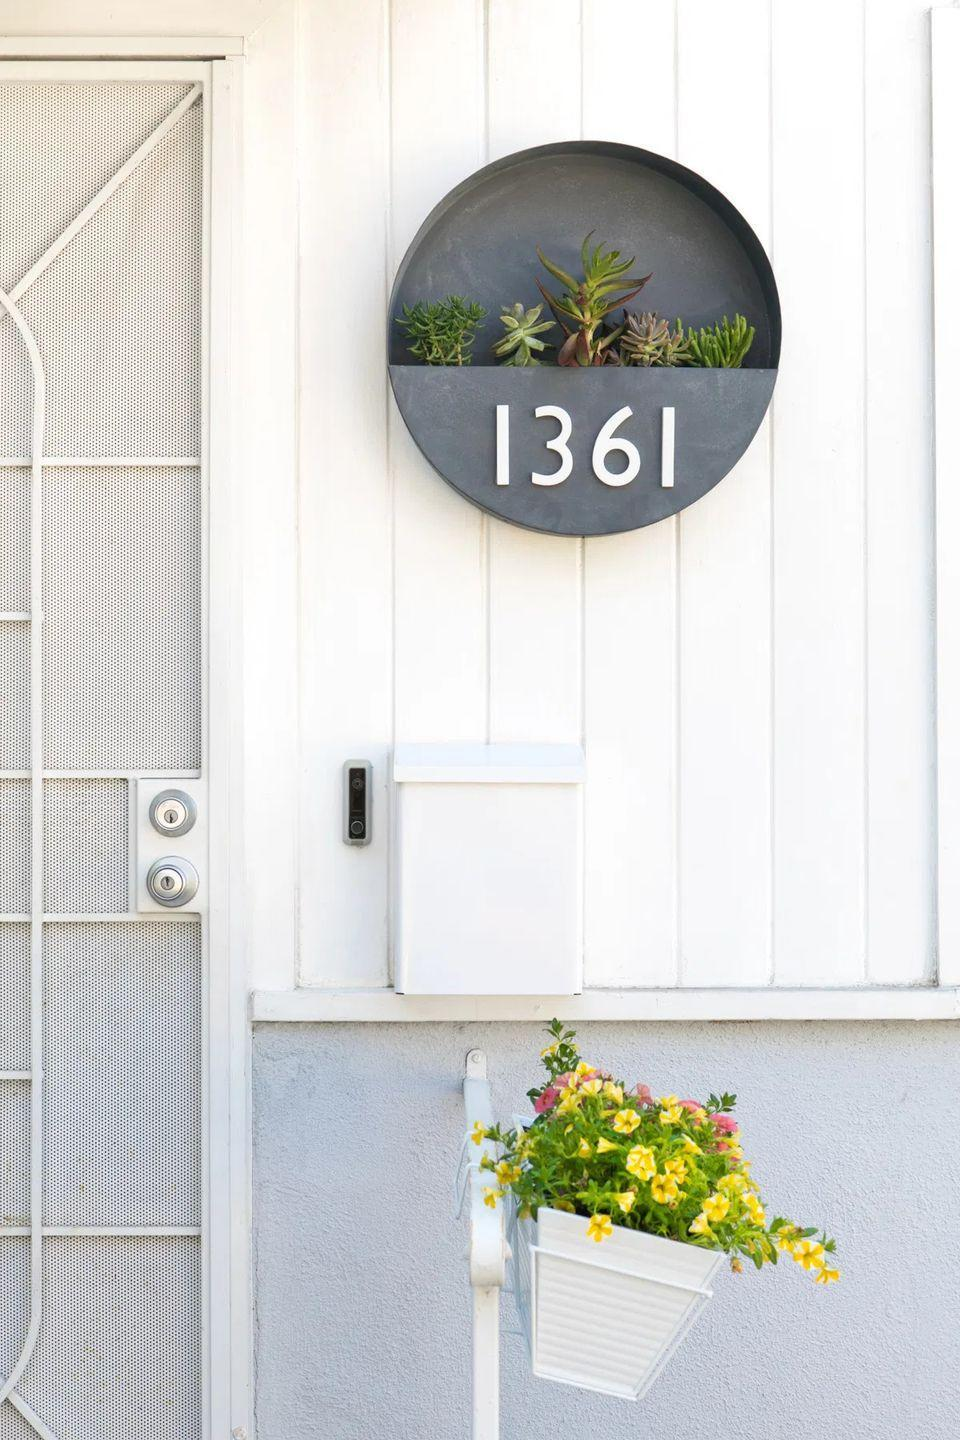 """<p>Swap out your out-of-date house numbers for a gorgeous wall planter display featuring assorted succulents. </p><p><strong>Get the tutorial at <a href=""""https://sarahhearts.com/diy-house-number-planter-rental-friendly-front-porch-decor/"""" rel=""""nofollow noopener"""" target=""""_blank"""" data-ylk=""""slk:Sarah Hearts"""" class=""""link rapid-noclick-resp"""">Sarah Hearts</a>.</strong></p><p><a class=""""link rapid-noclick-resp"""" href=""""https://go.redirectingat.com?id=74968X1596630&url=https%3A%2F%2Fwww.walmart.com%2Fip%2FEclectic-E6000-Industrial-Adhesive-3-fl-oz-Clear-or-Transparent%2F44148643&sref=https%3A%2F%2Fwww.thepioneerwoman.com%2Fhome-lifestyle%2Fgardening%2Fg36556911%2Fdiy-planters%2F"""" rel=""""nofollow noopener"""" target=""""_blank"""" data-ylk=""""slk:SHOP GLUE"""">SHOP GLUE</a></p>"""